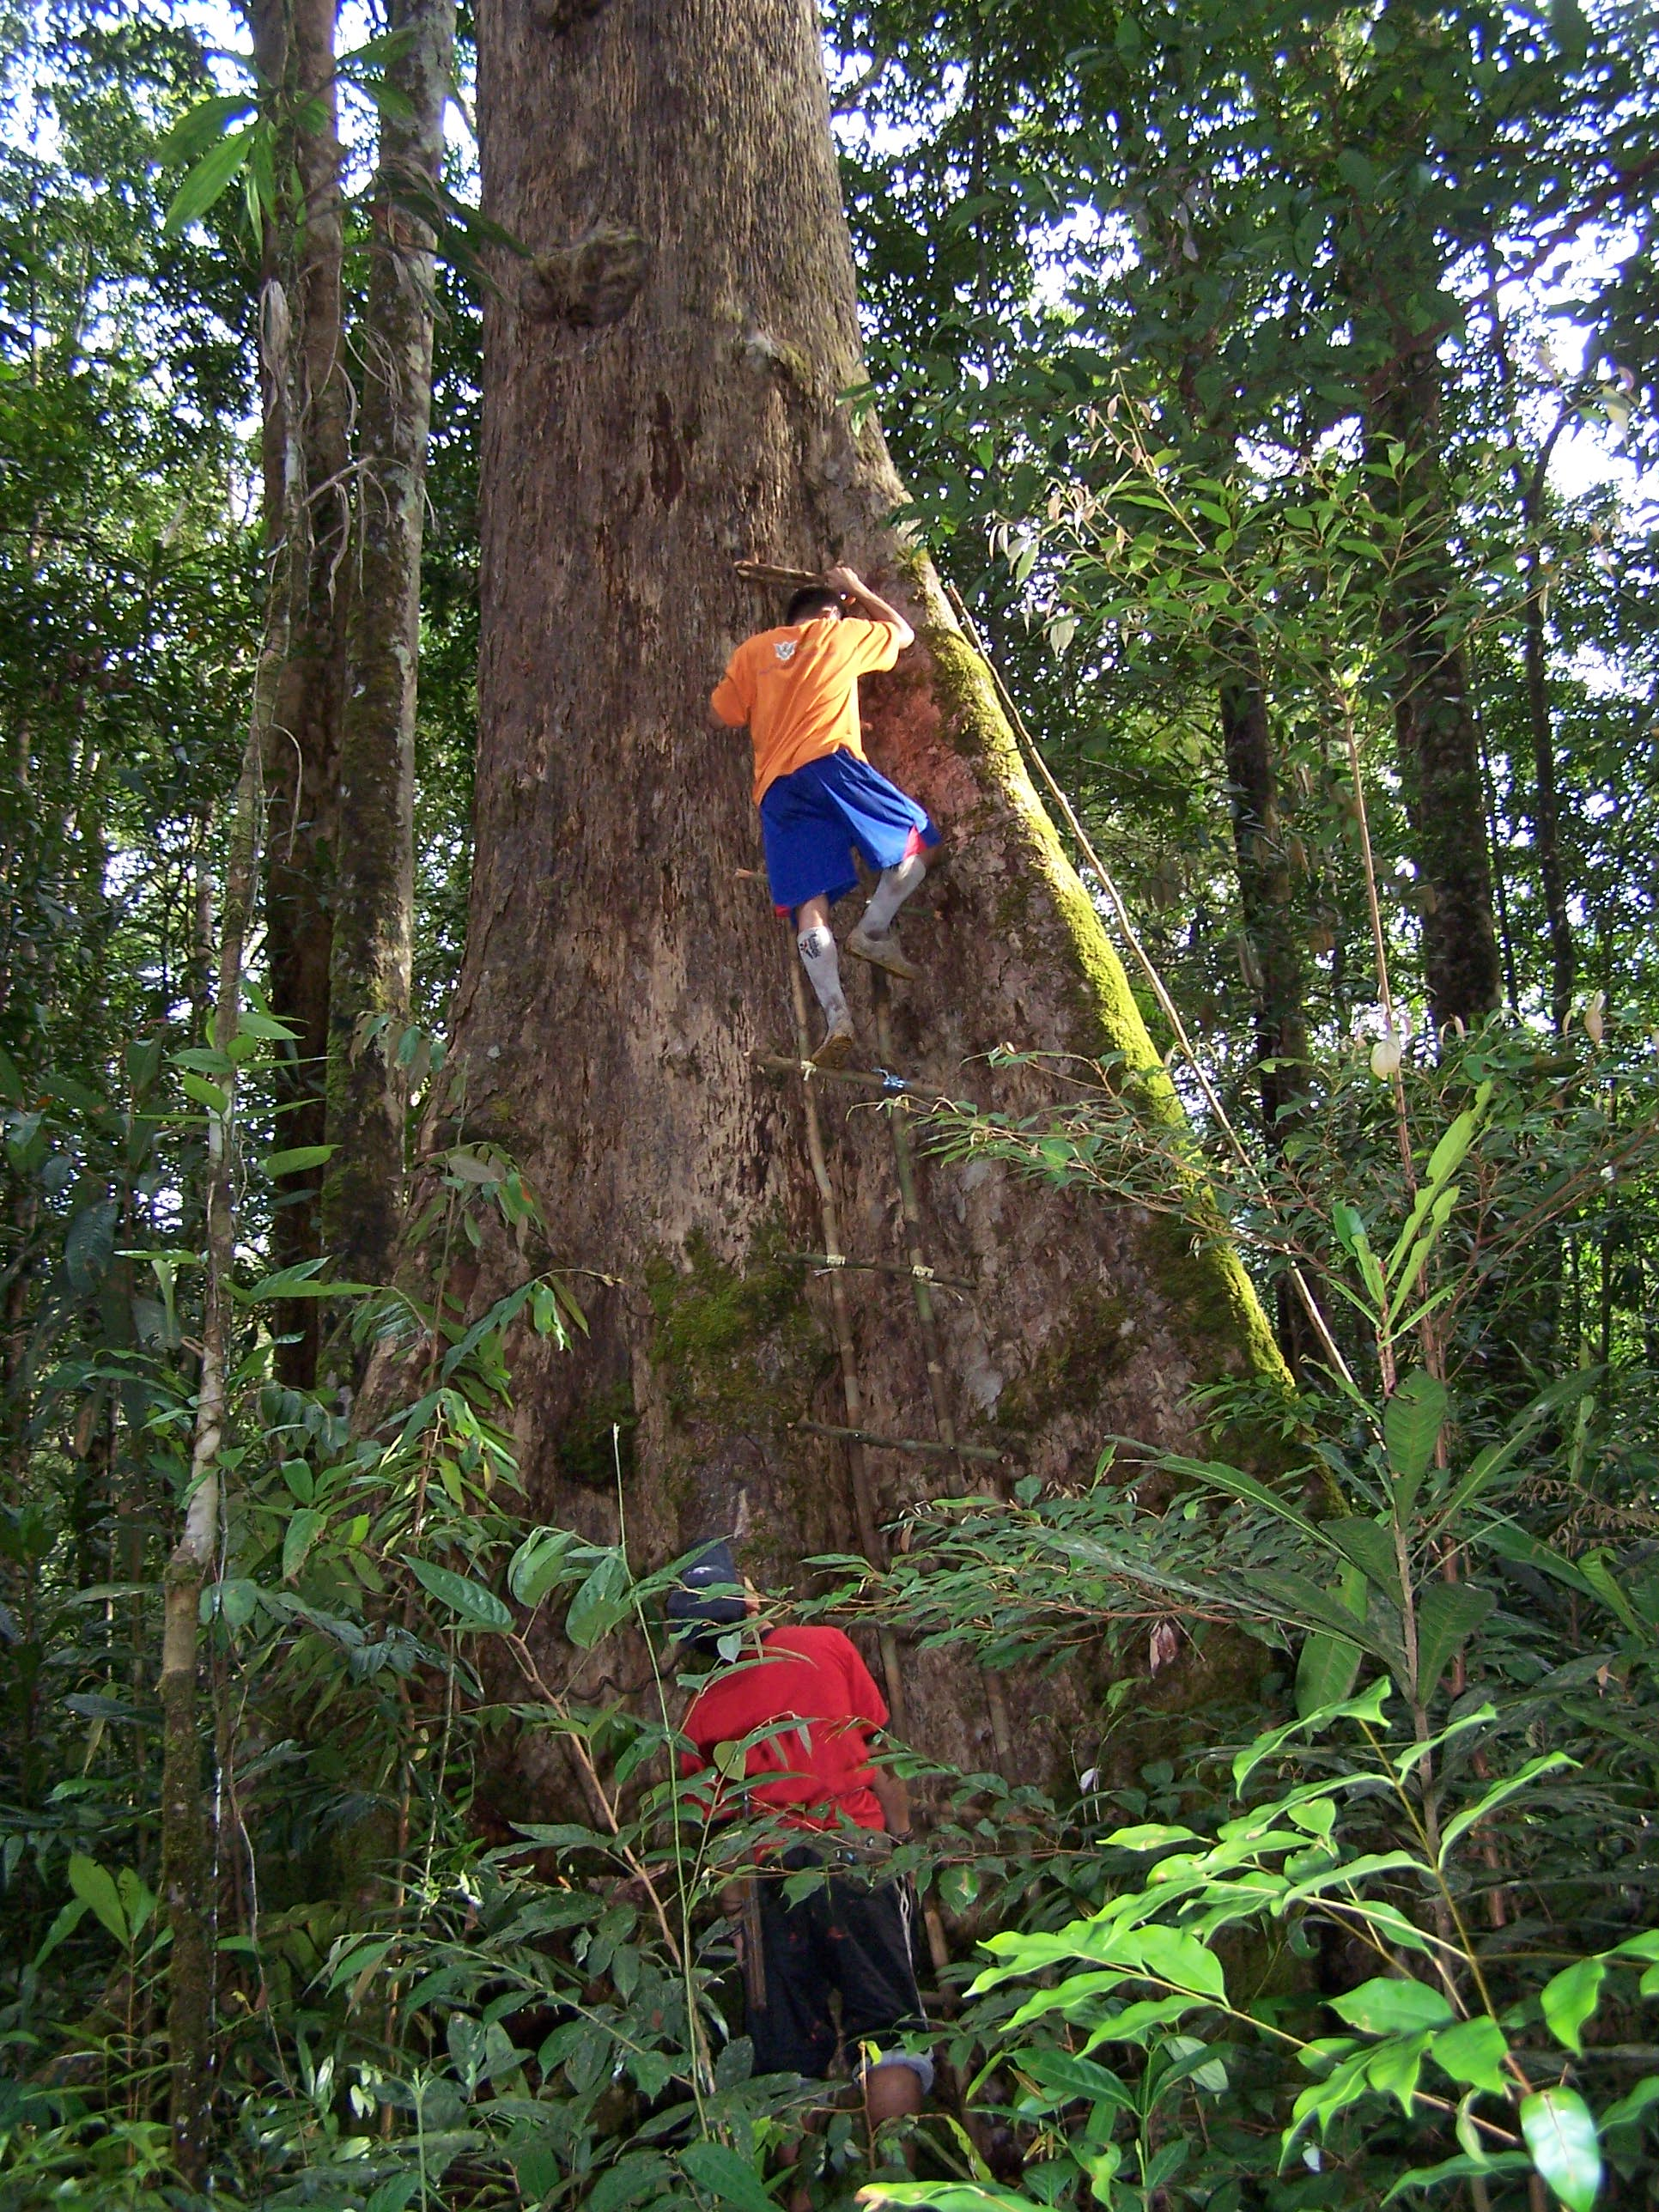 A dipterocarps tree in Sarawak, a researcher climbing up the side. (c) Lindsay Banin